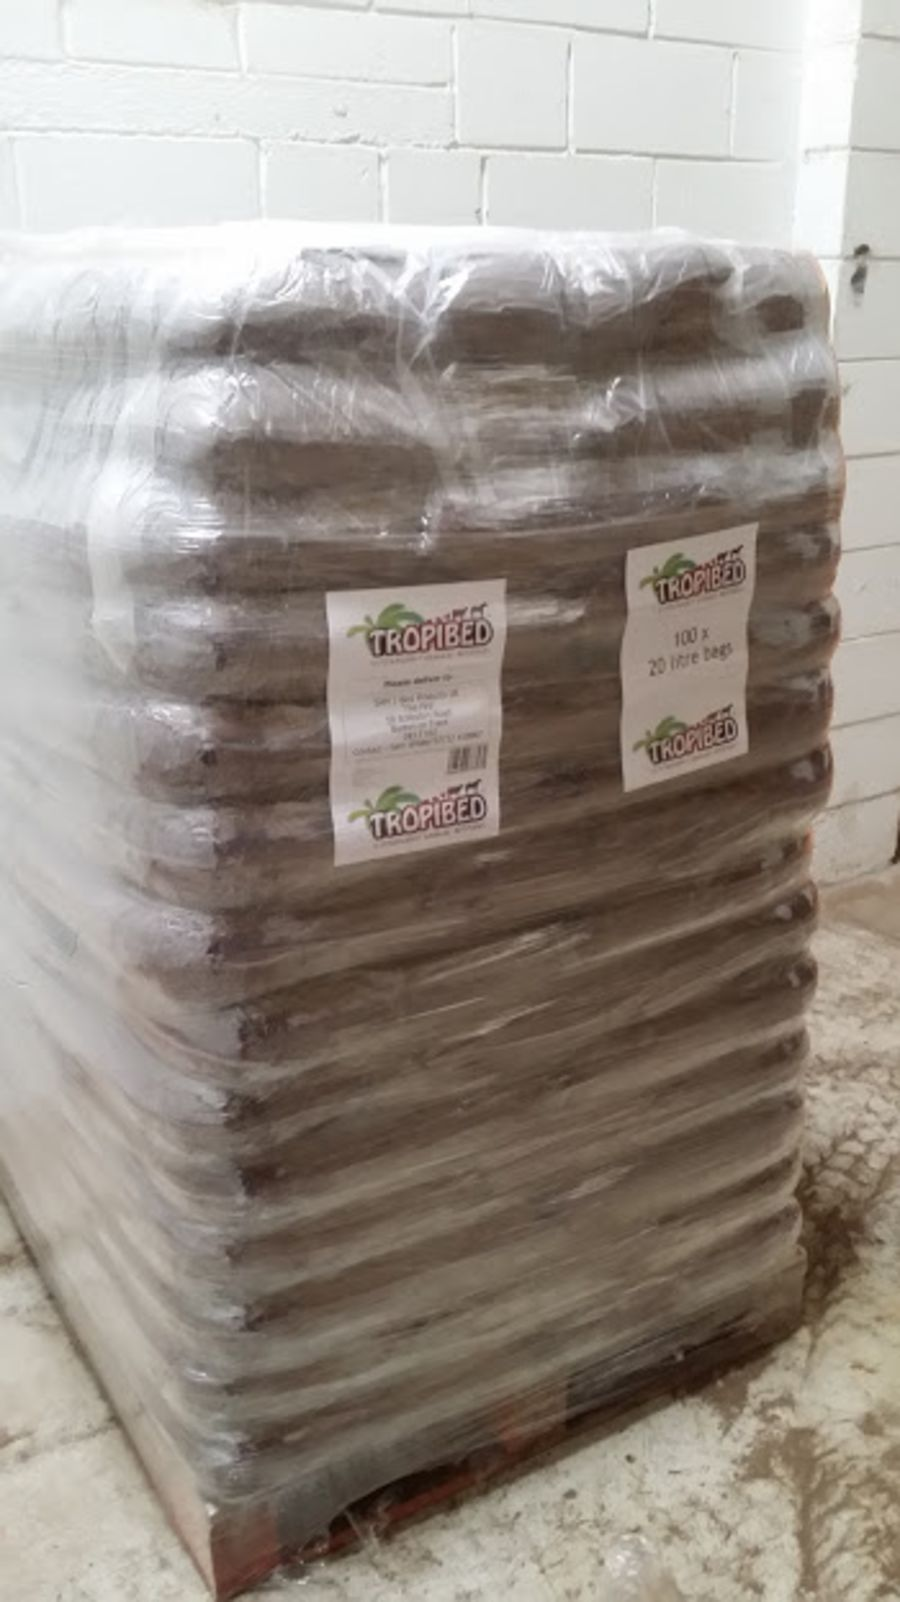 Wholesale Tropibed 20 litre